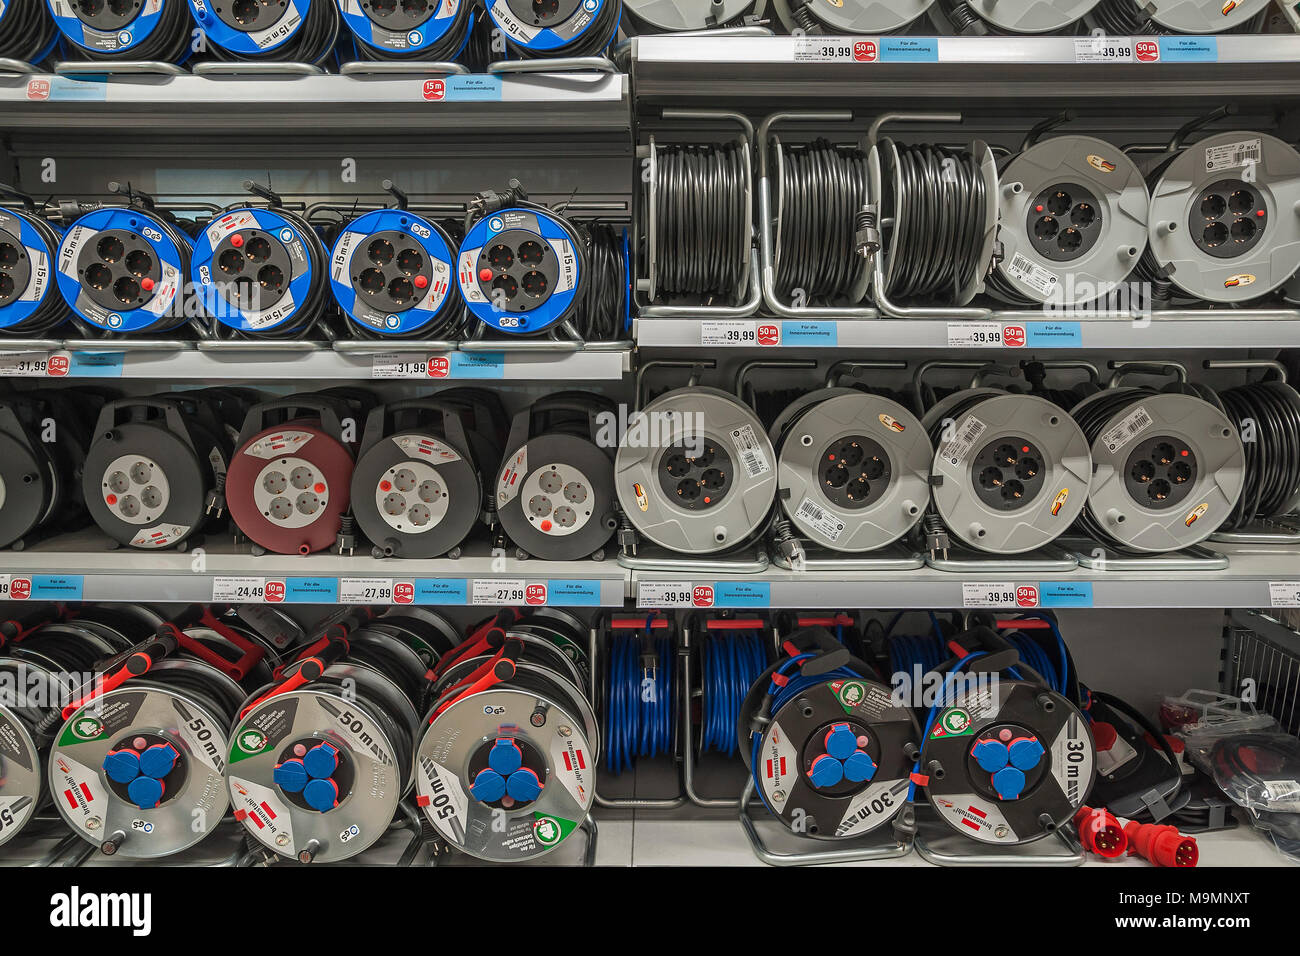 Cable Drums Stock Photos & Cable Drums Stock Images - Alamy